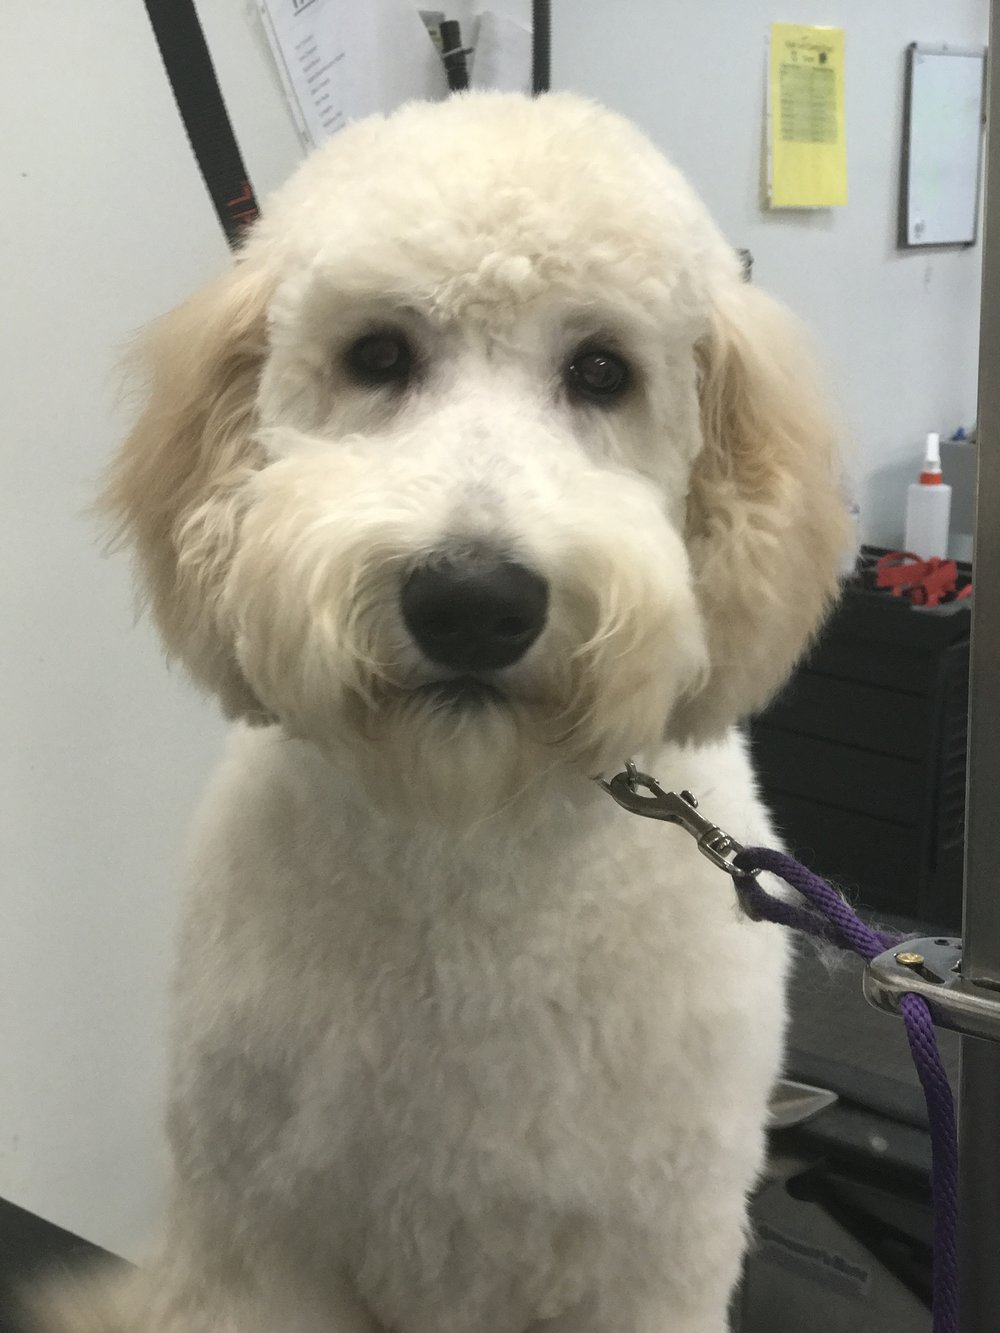 Grooming a Golden Doodle